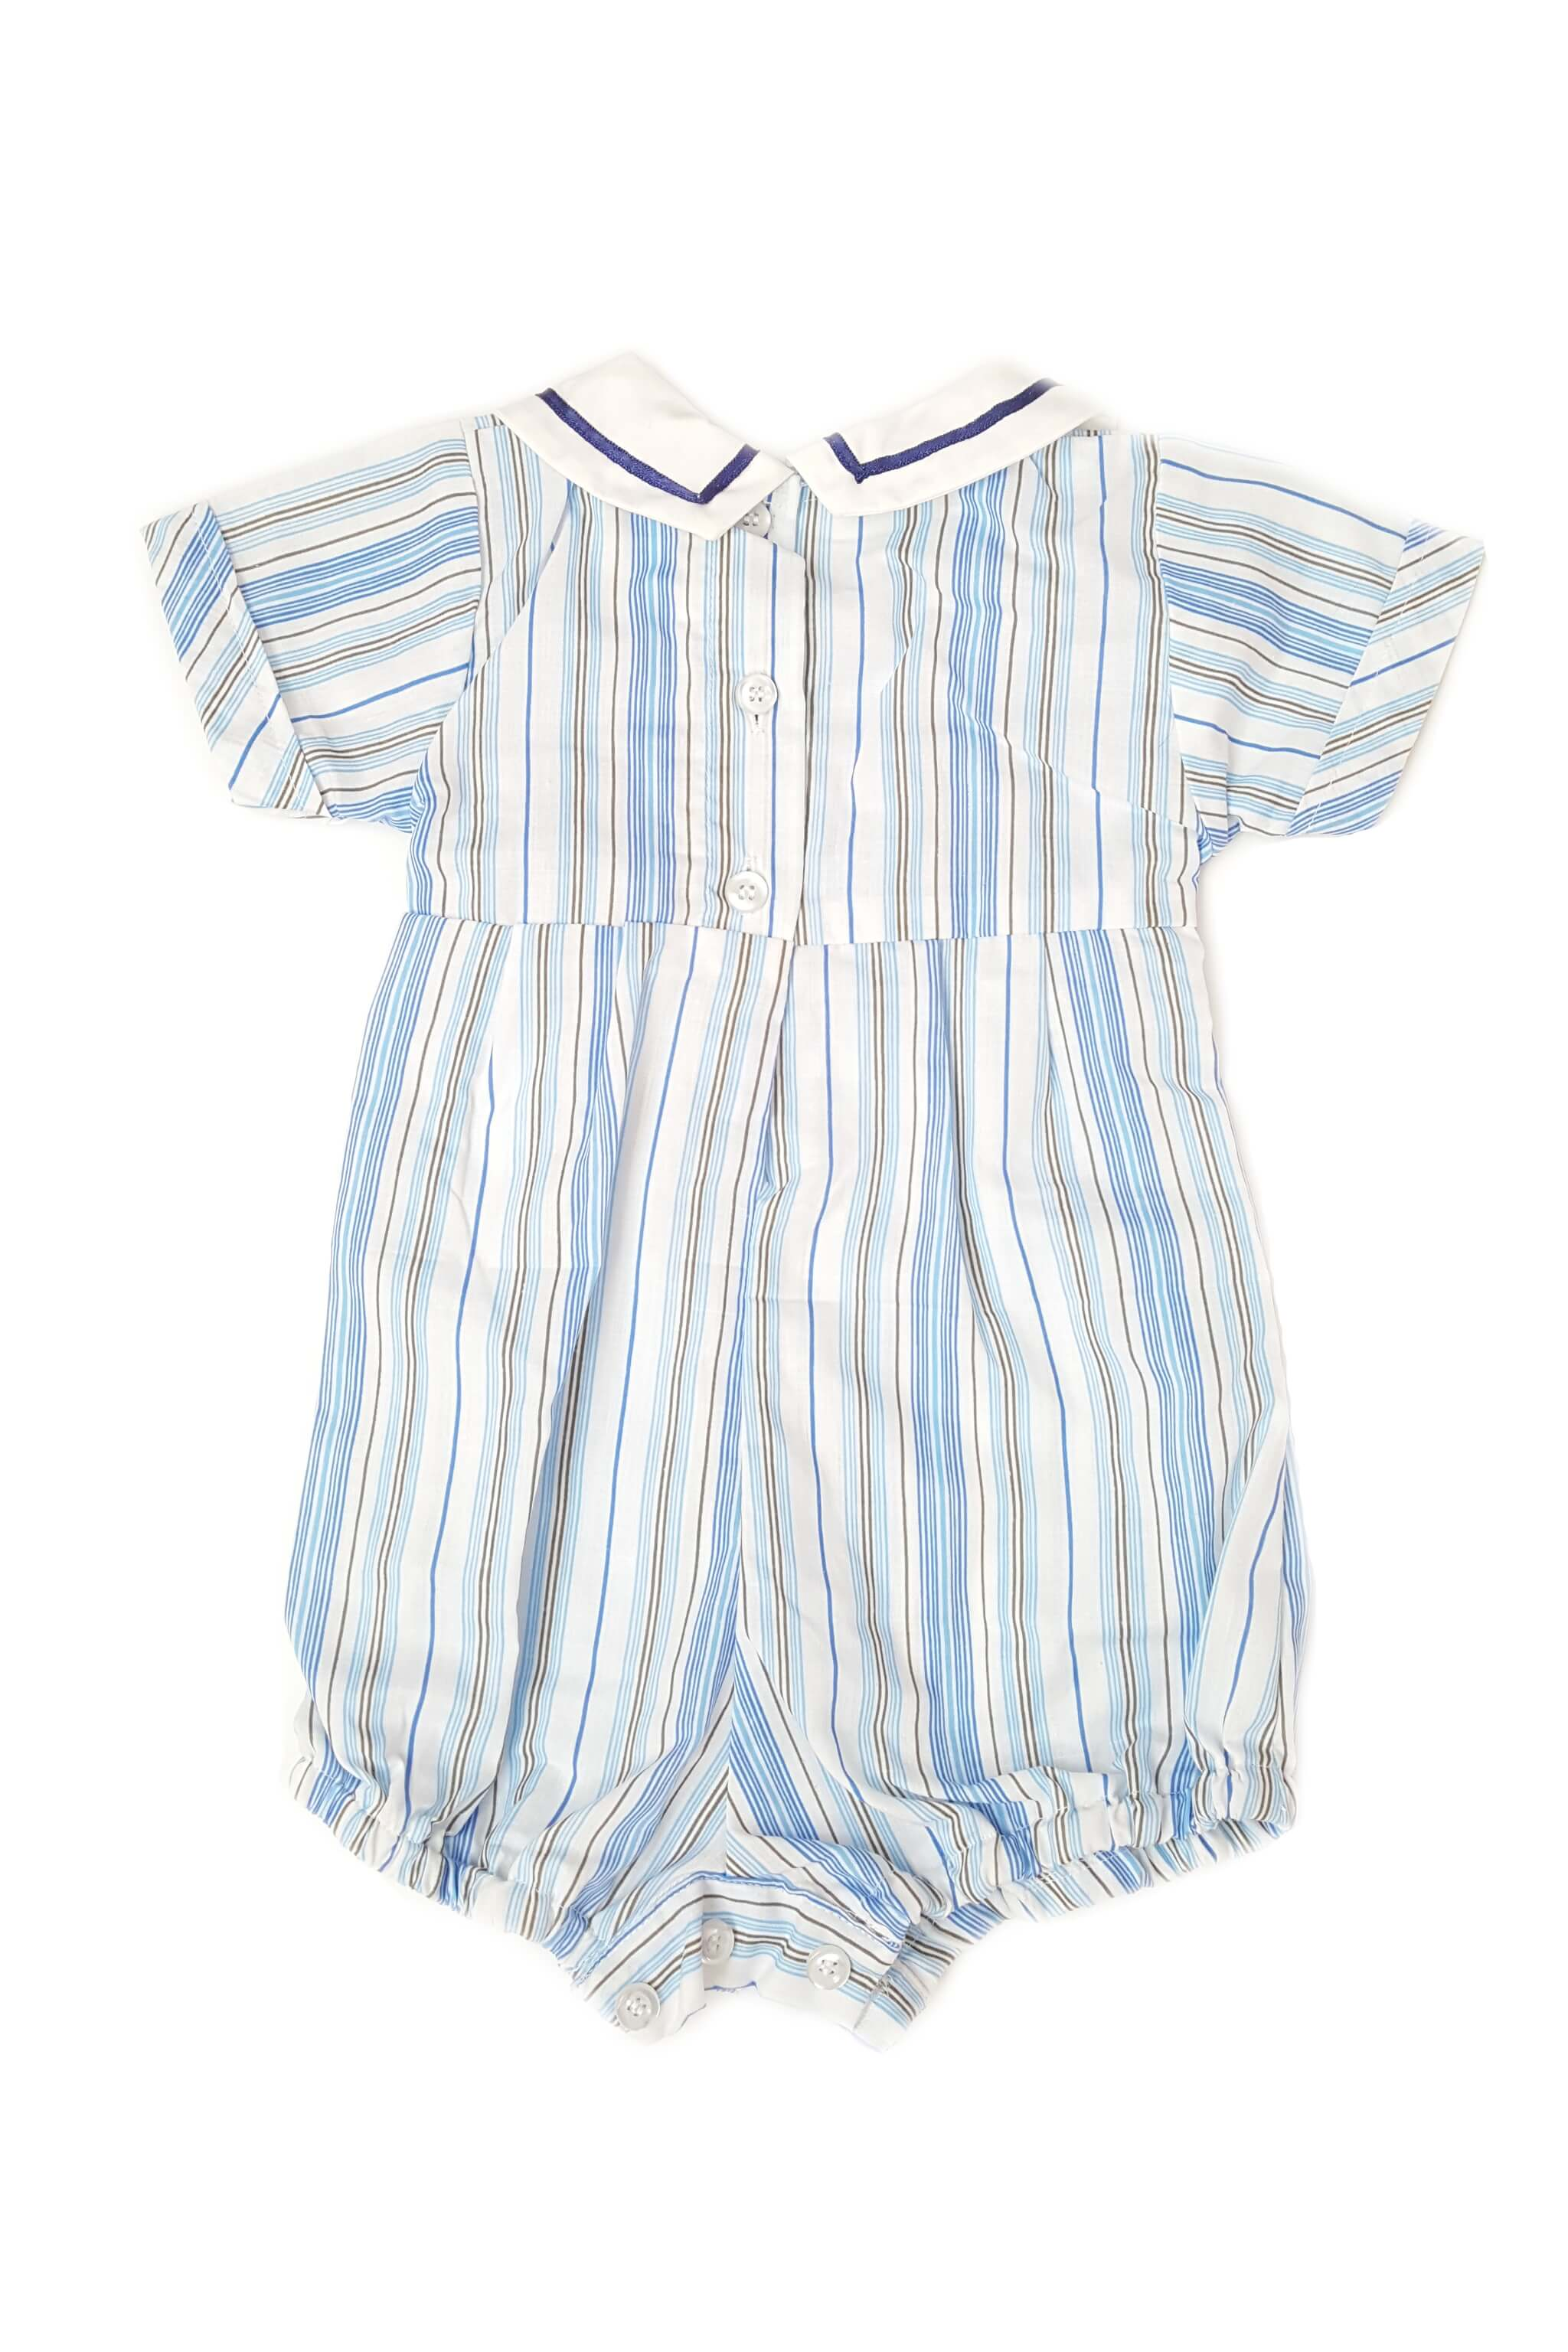 Back of timeless nautical striped romper with a contrasting white nautical collar and hand-smocked bodice for baby boys